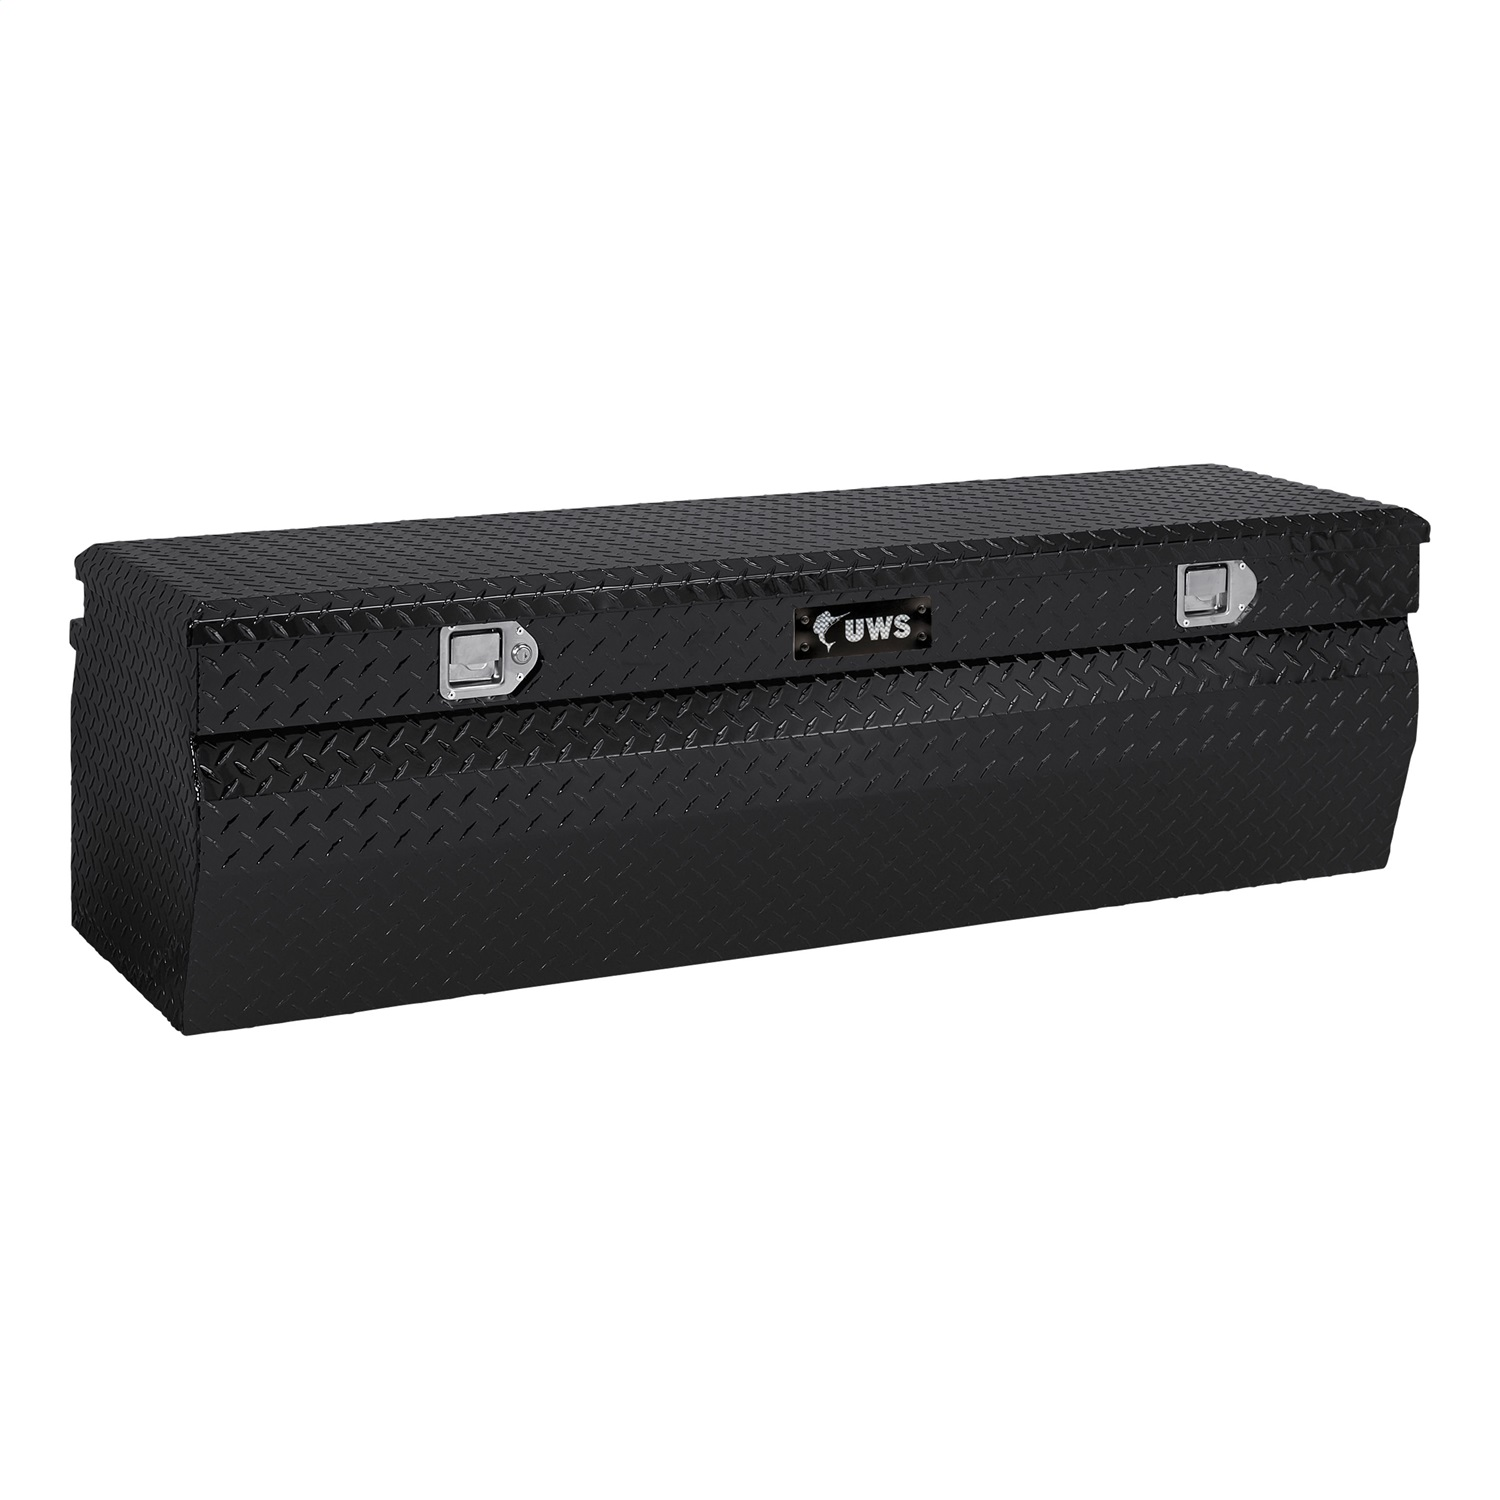 Chest Box Wedge, L 60 in. x W 20 in. x H 17.25 in., Black